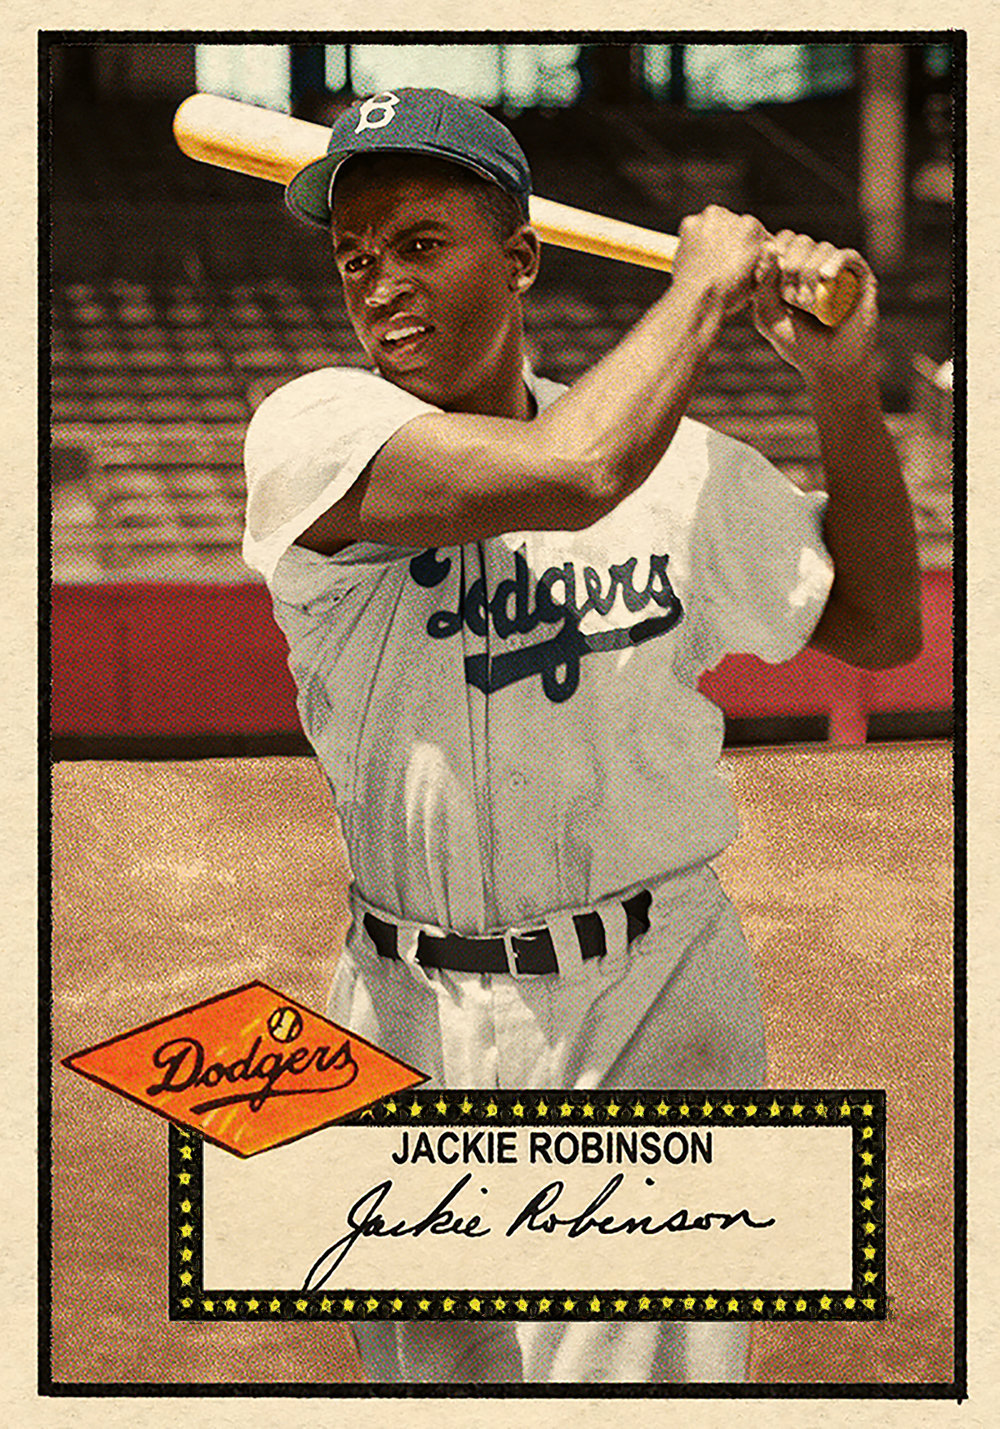 '52 Baseball #296 Jackie Robinson HI# - One of our favorites of all time. No detail was spared in creating this gem.SOLD 320.00 USD, December 2018